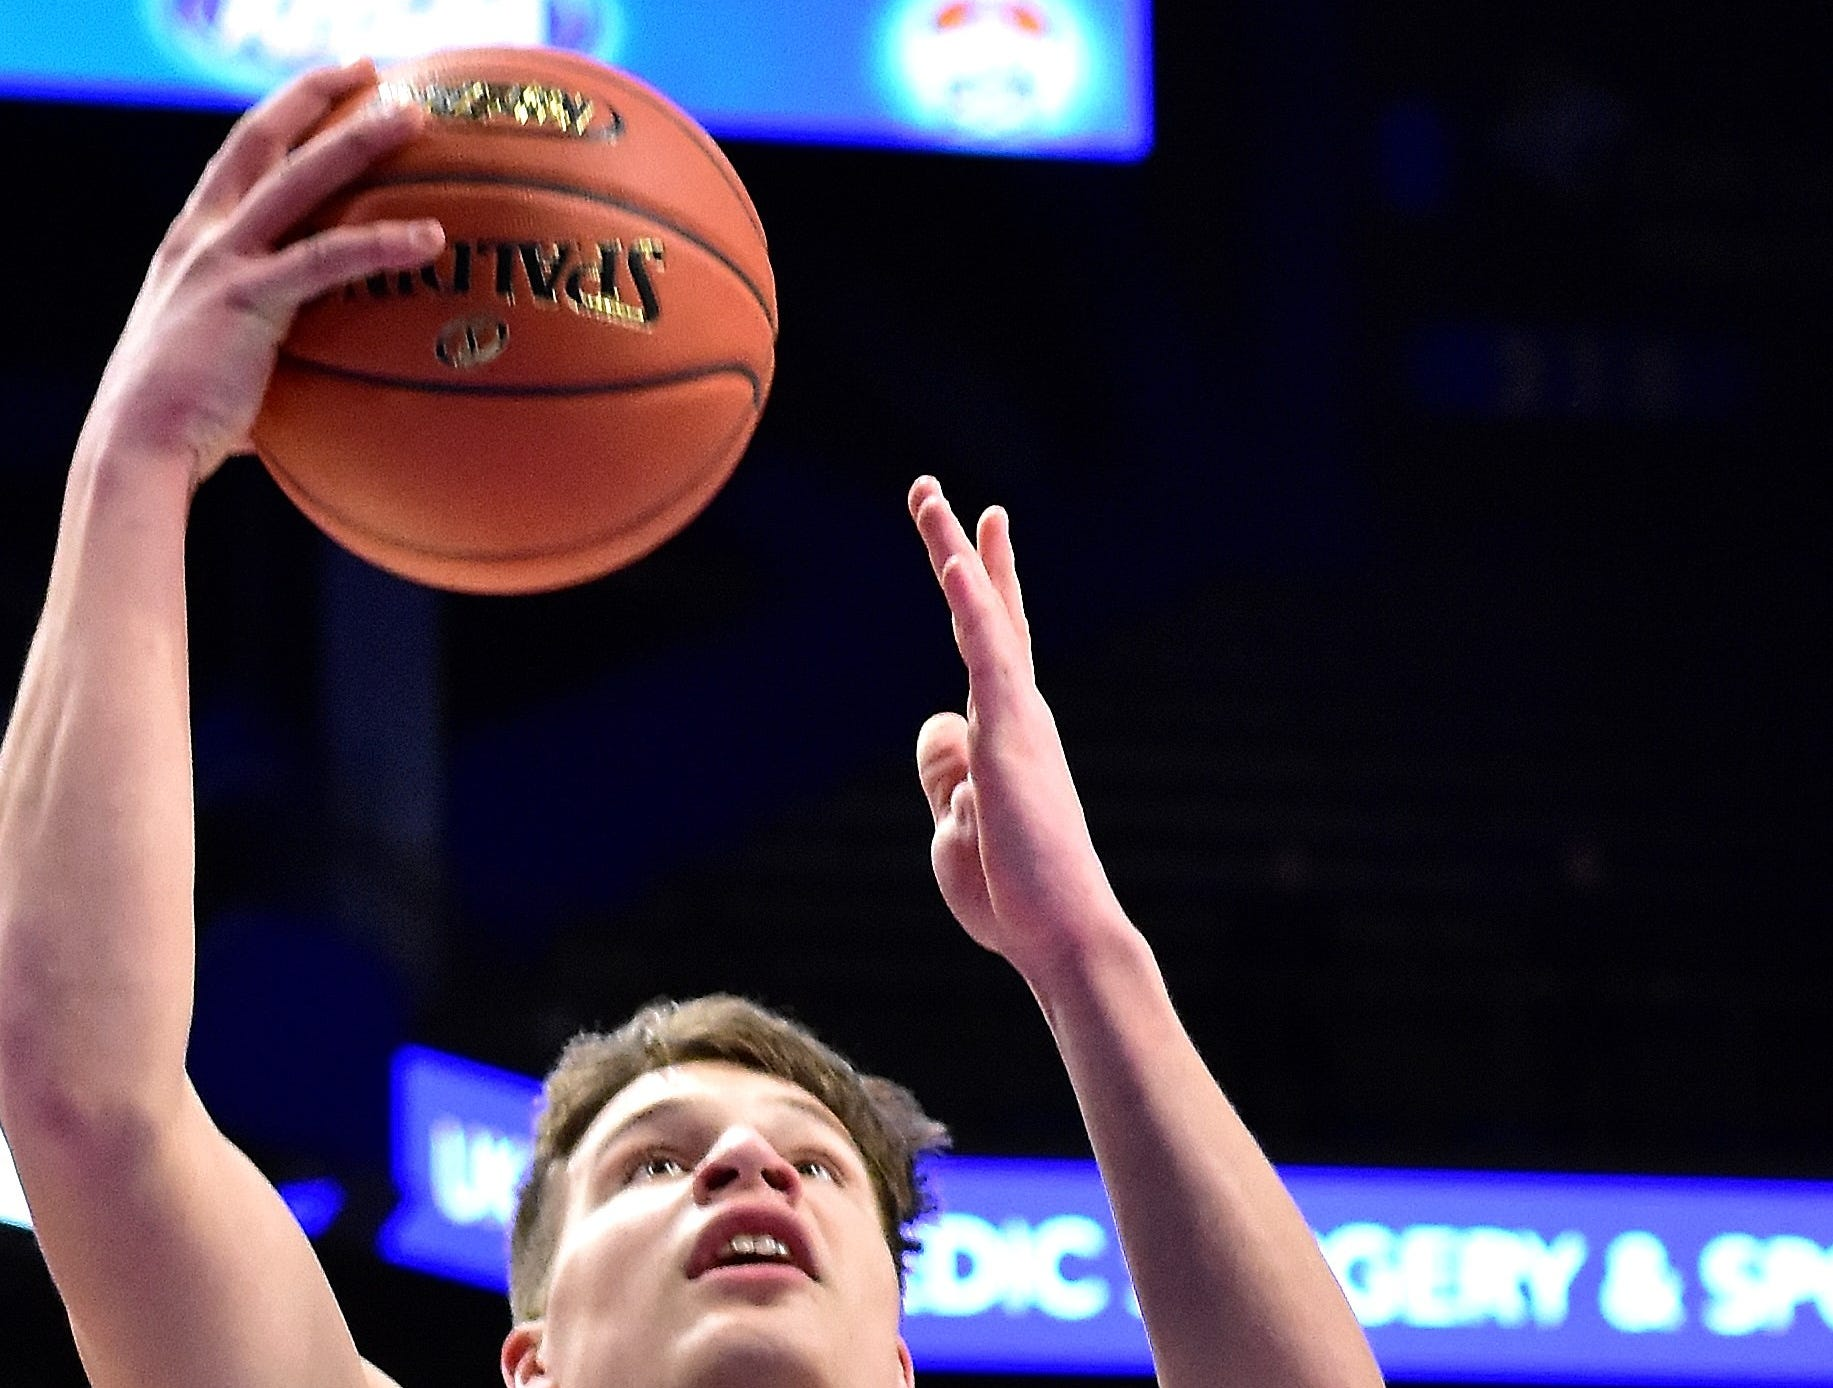 Reid Jolly finds his way to the hoop for Campbell County in their win over John Hardin at the KHSAA Sweet 16 Tournament at Rupp Arena in Lexington, KY, March 6, 2019